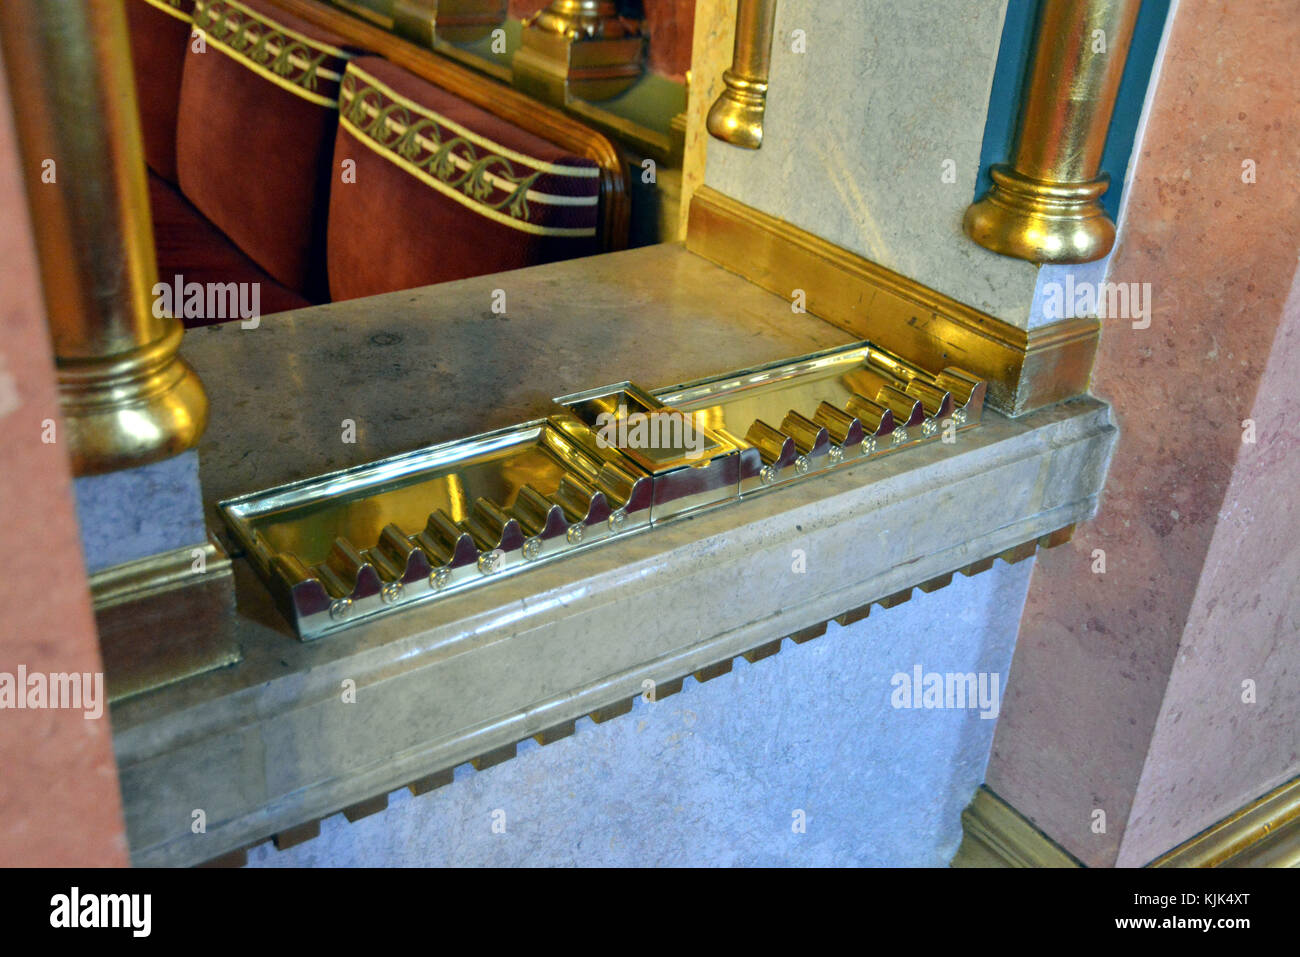 Europe, Hungary, Budapest, Hungarian Parliament Interior Cigar holder from a bygone era - Stock Image